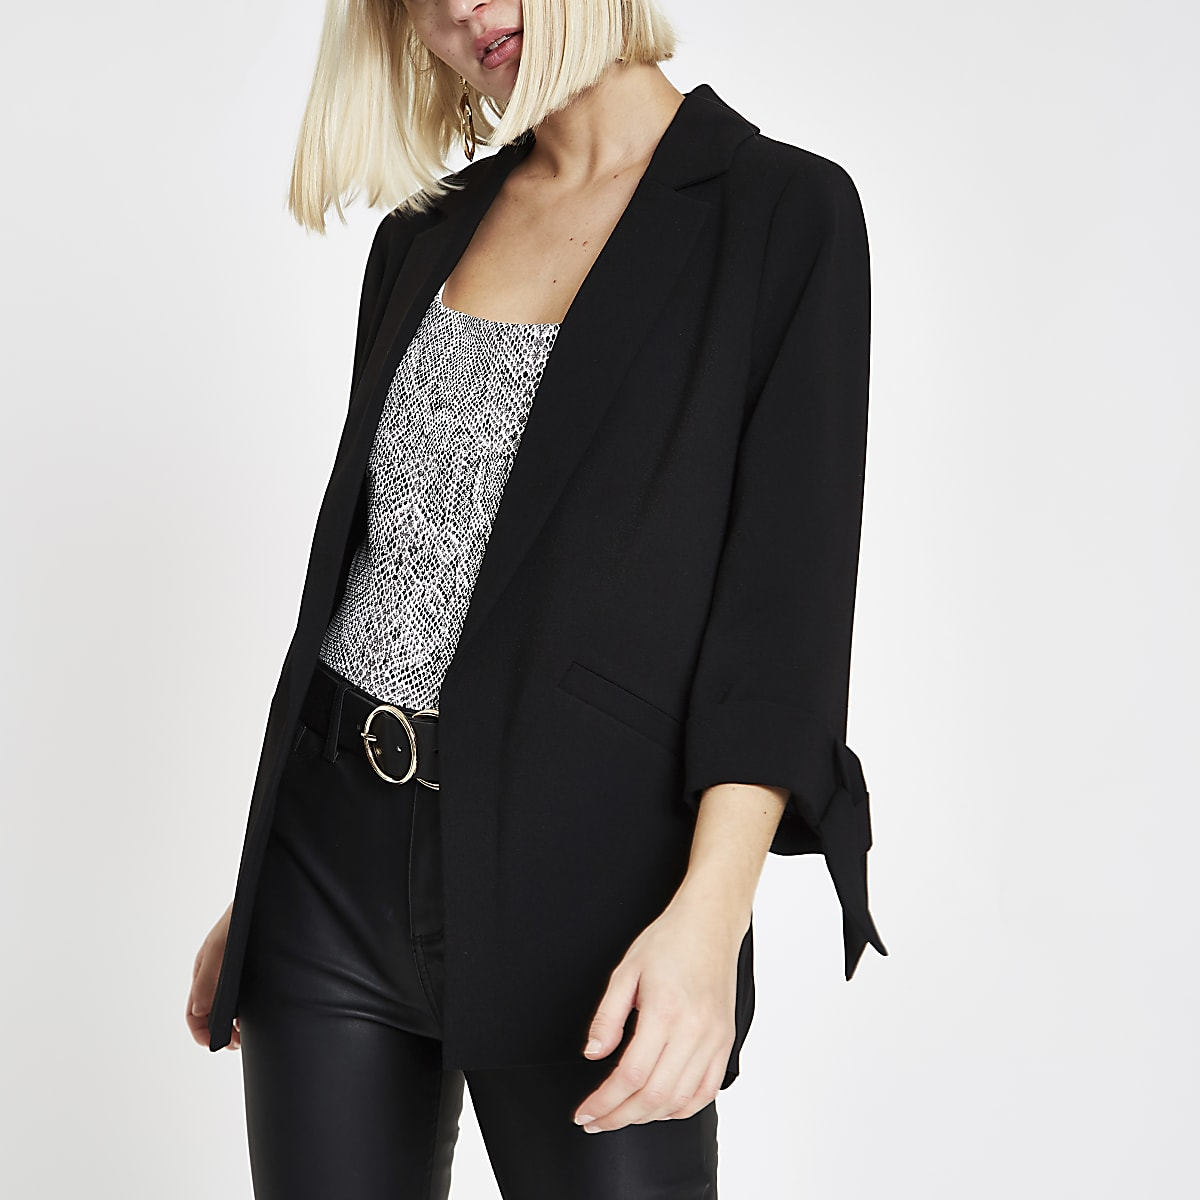 Black bow cuff blazer